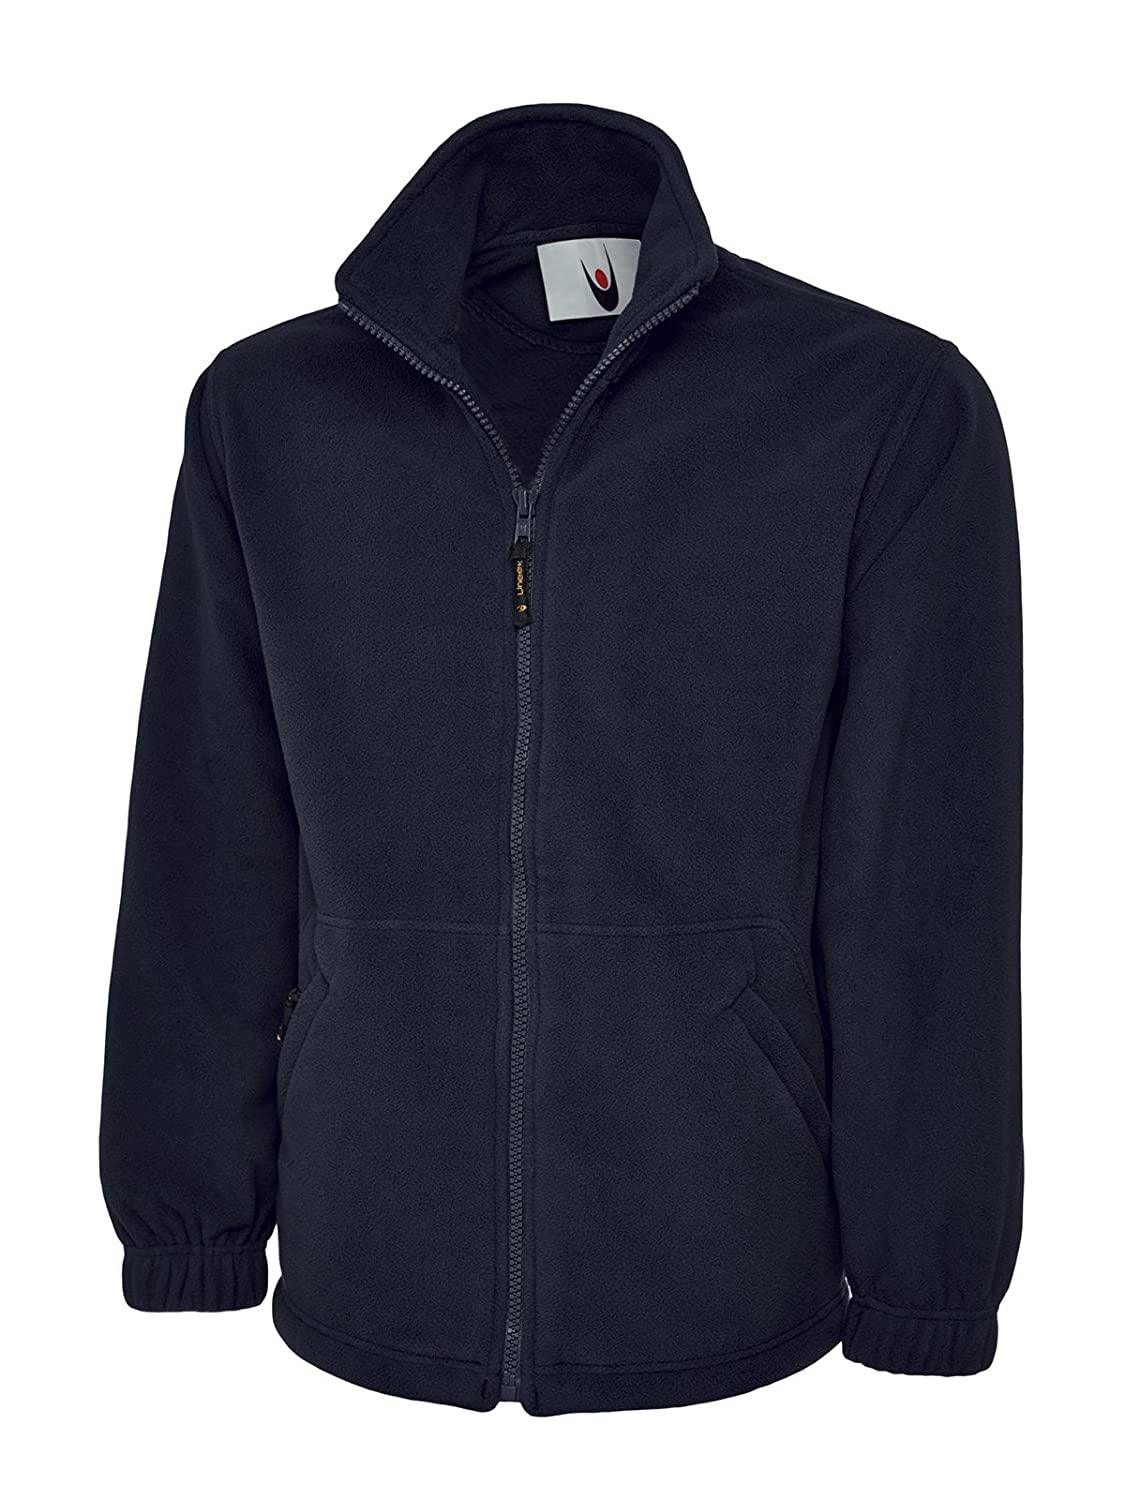 Uneek Clothing-mens-Classic Full Zip Micro Fleece Jacket-300 gsm-Navy-2XL Starlite 604NY2XL